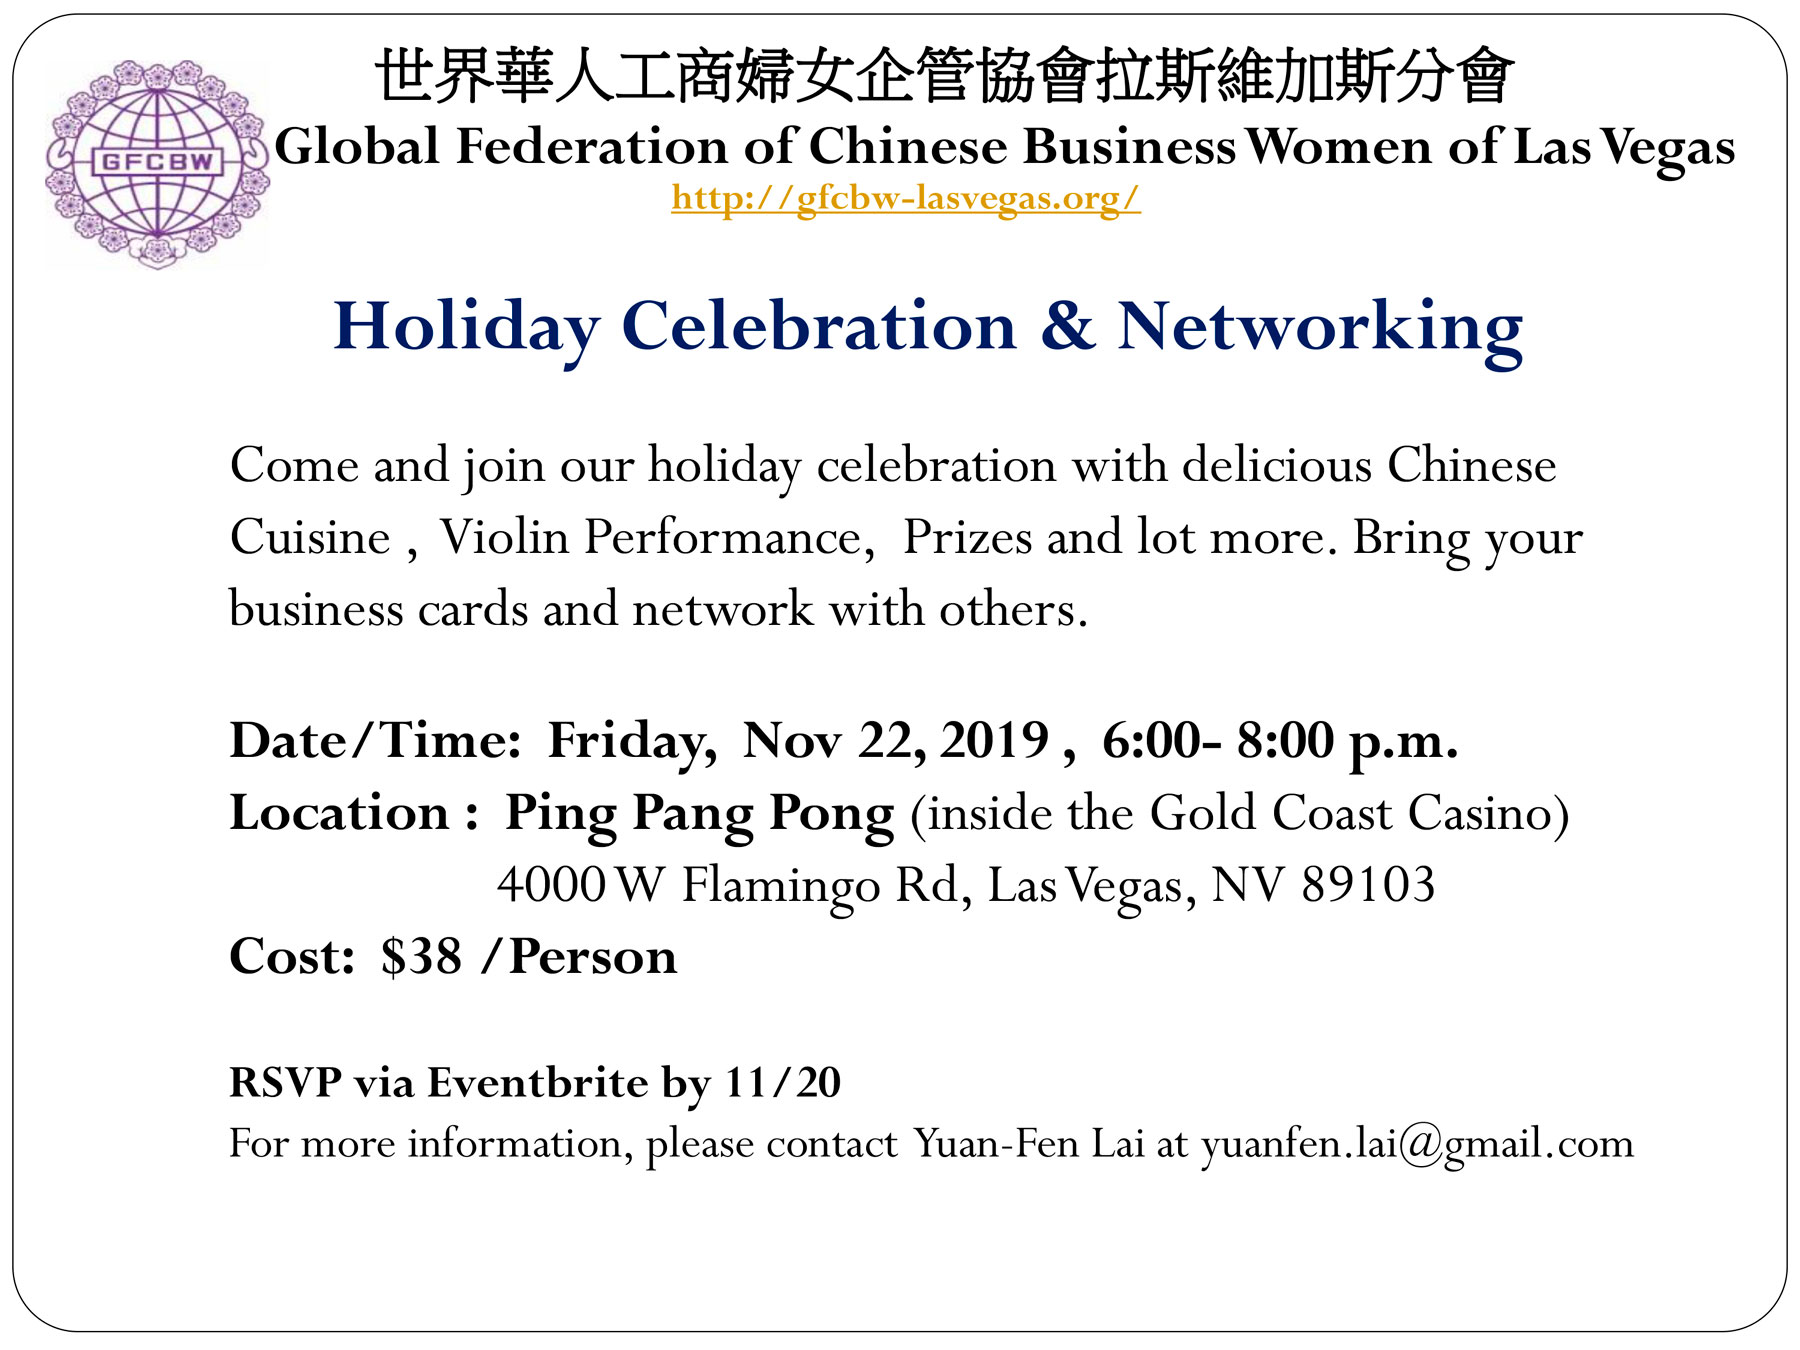 GFCBW Holiday Celebration & Networking @ Ping Pang Pong (inside the Gold Coast Casino)